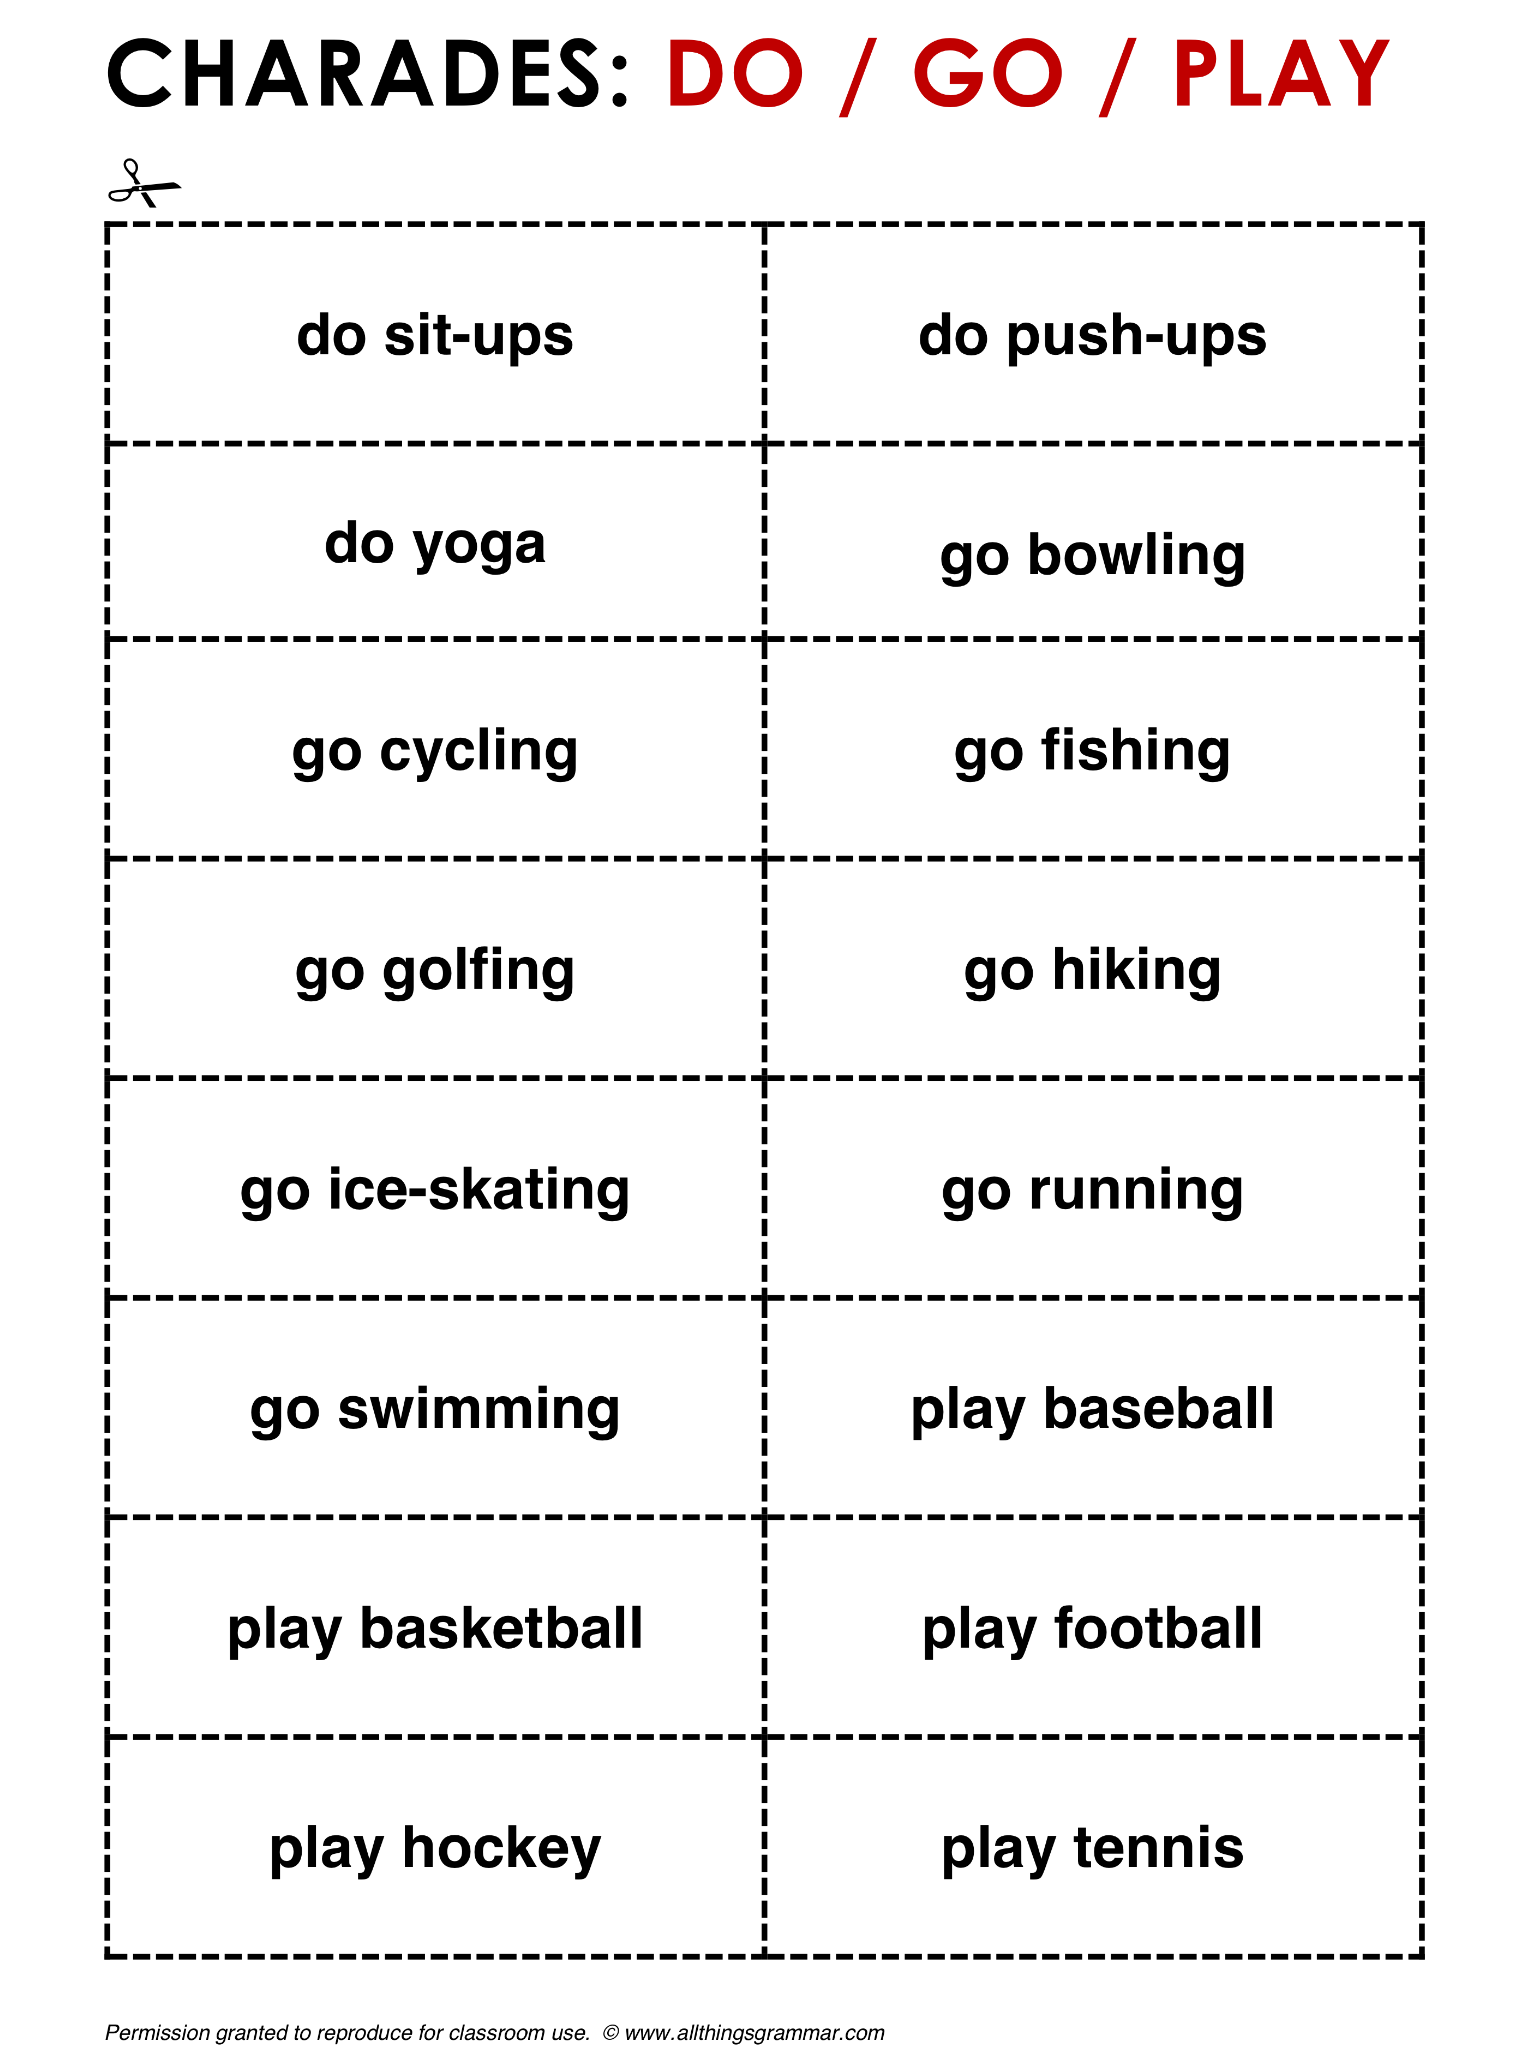 English Grammar Do Go Play Lthingsgrammar Do Go Play